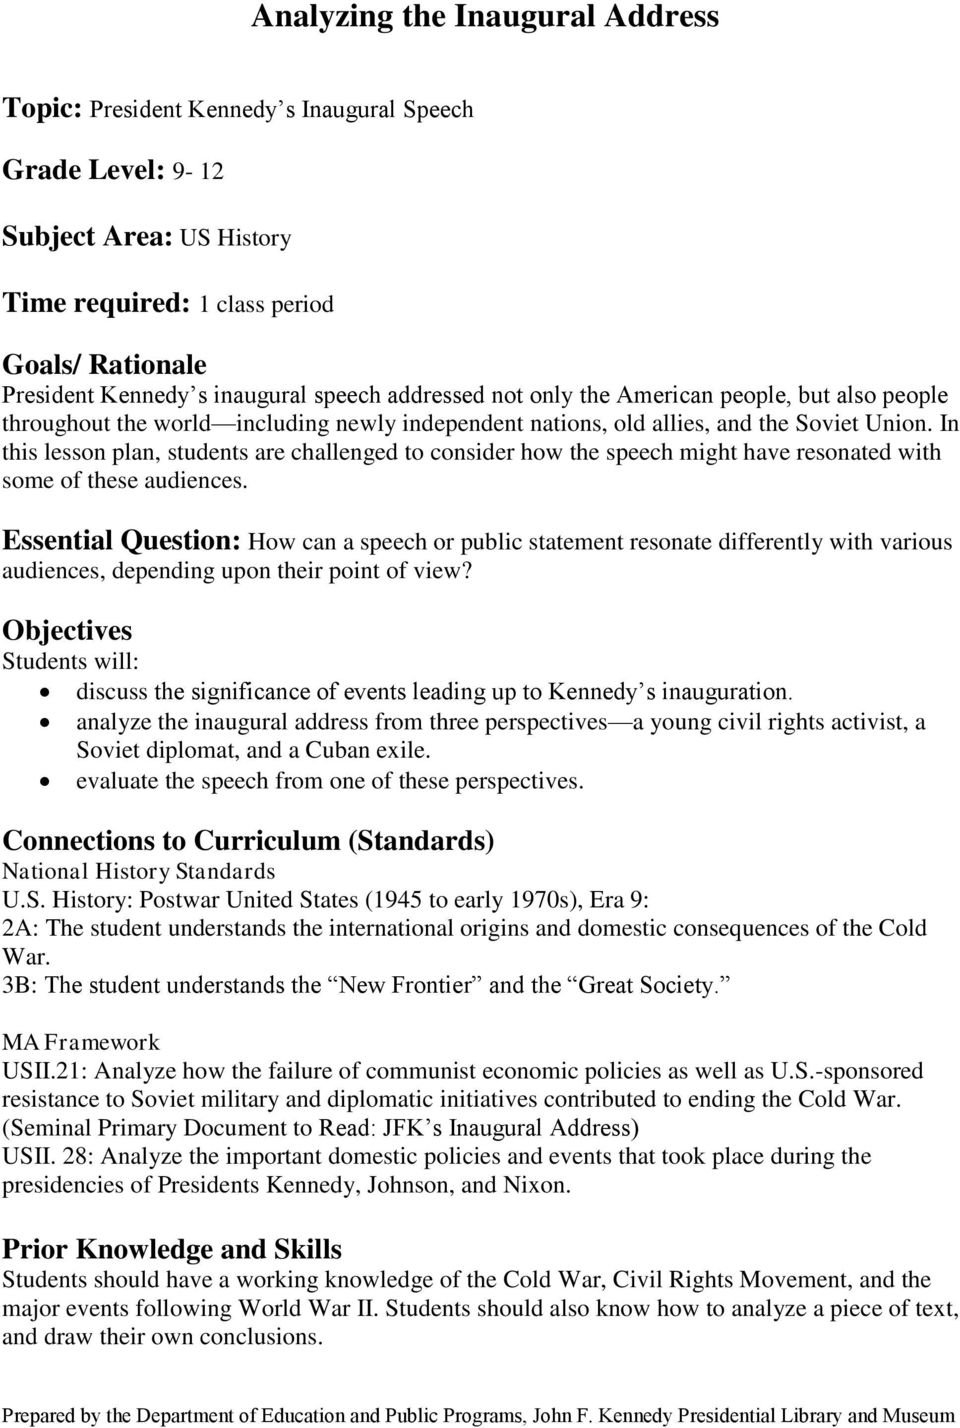 Analyzing The Inaugural Address  Pdf Inside The New Frontier And The Great Society Worksheet Answers